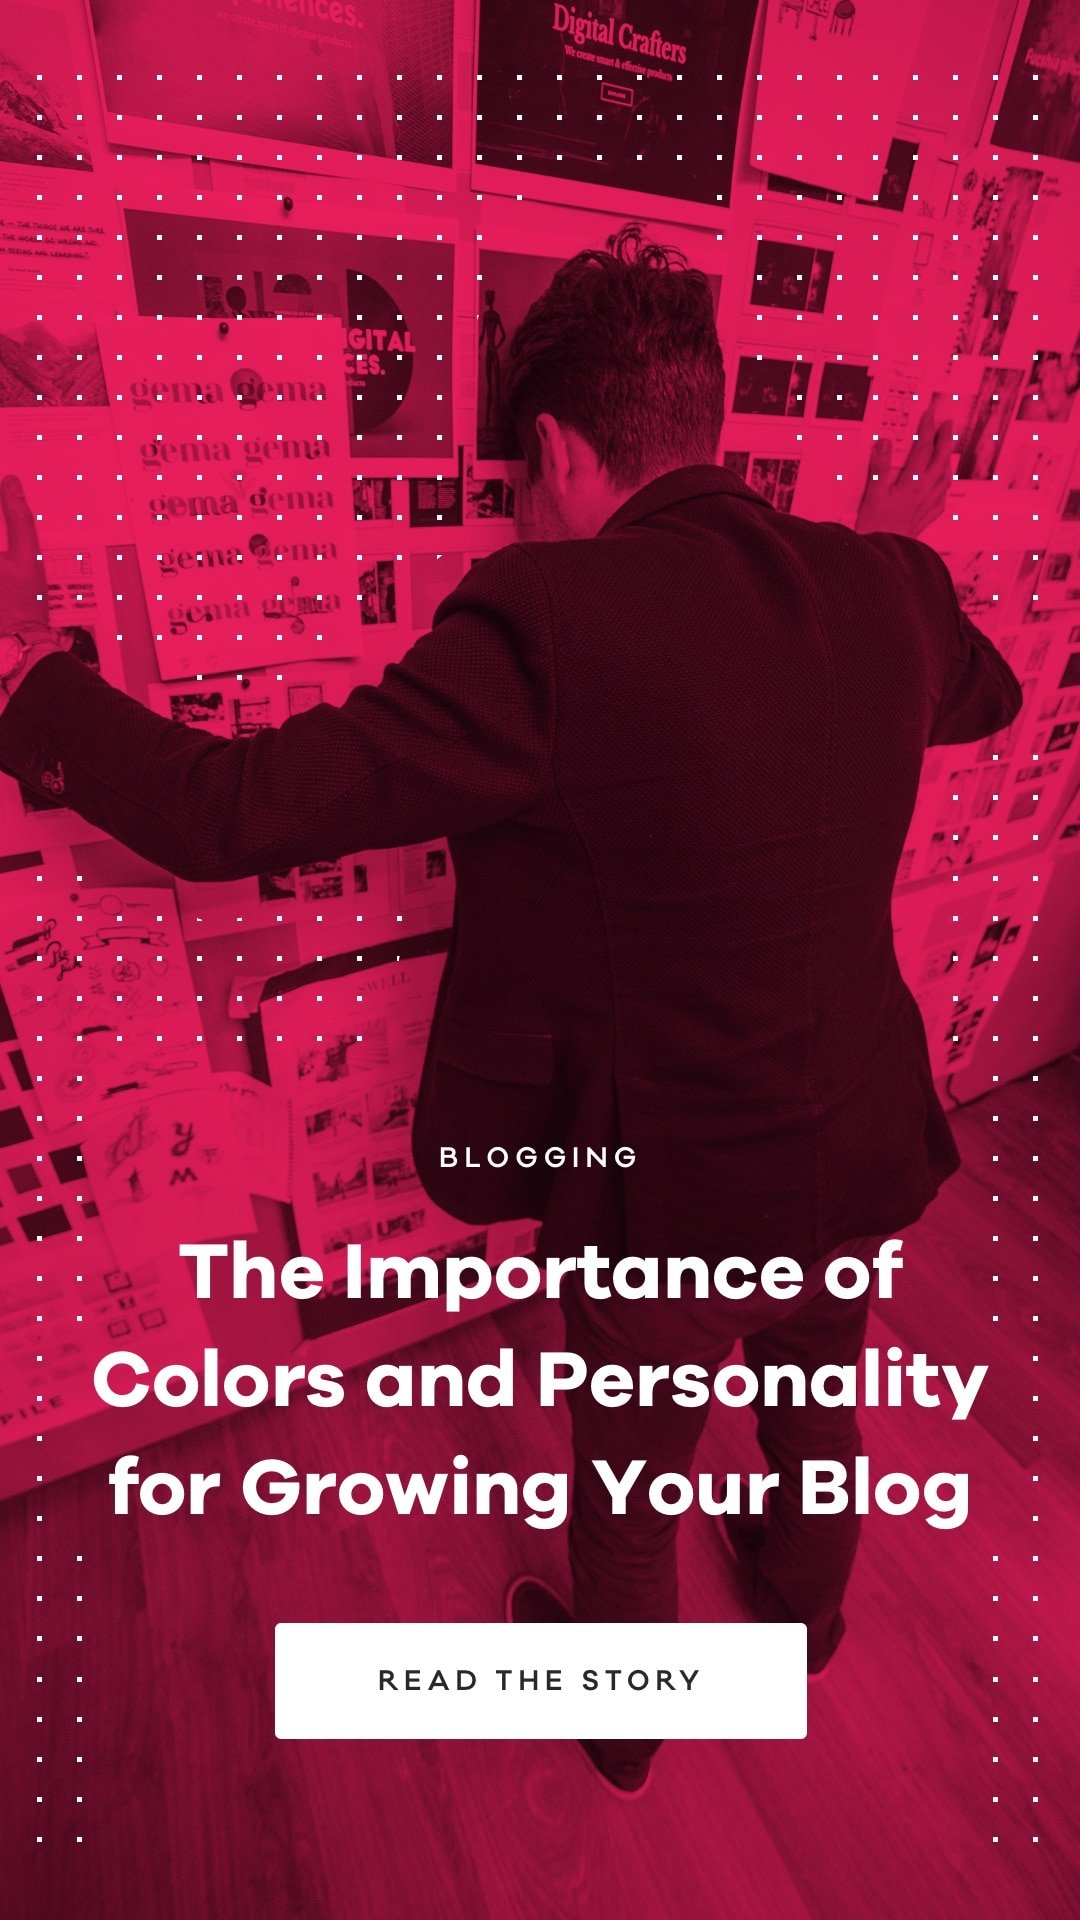 Colors are an emotional expression of our personality. They hold power to influence your audience's feelings and behaviors directly.